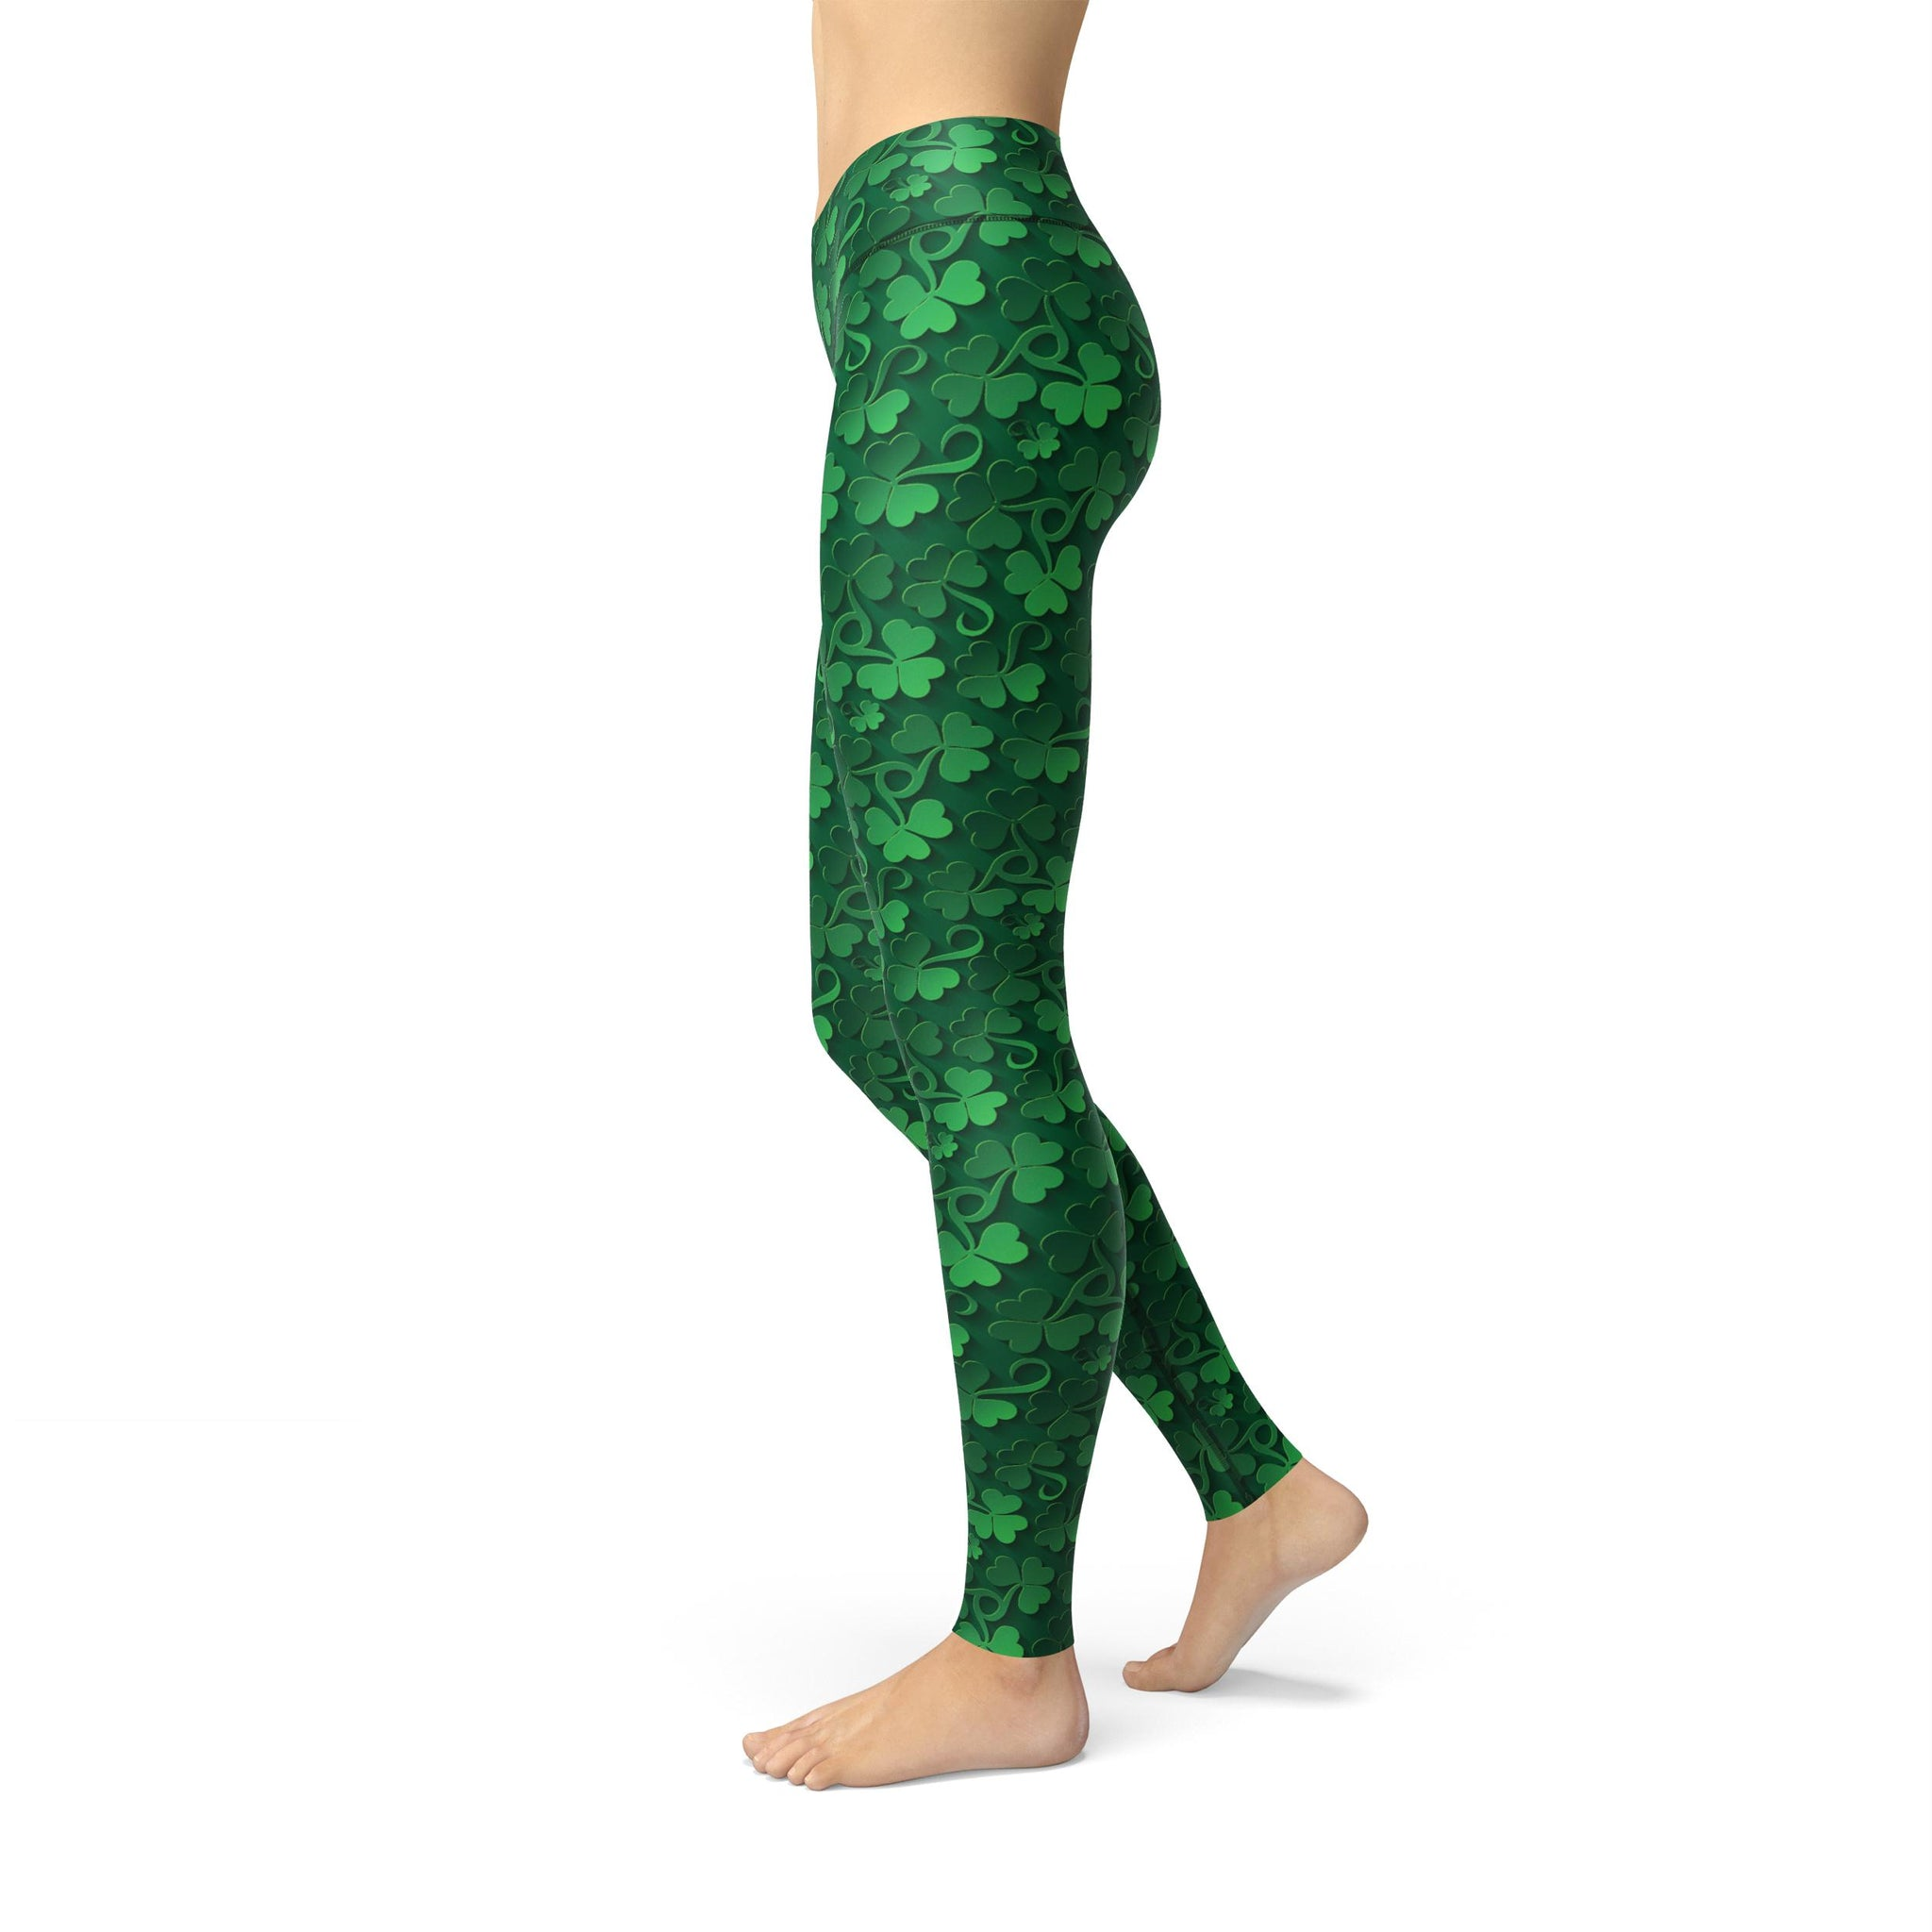 Gentle High-Waist Aoife's Tree Legging